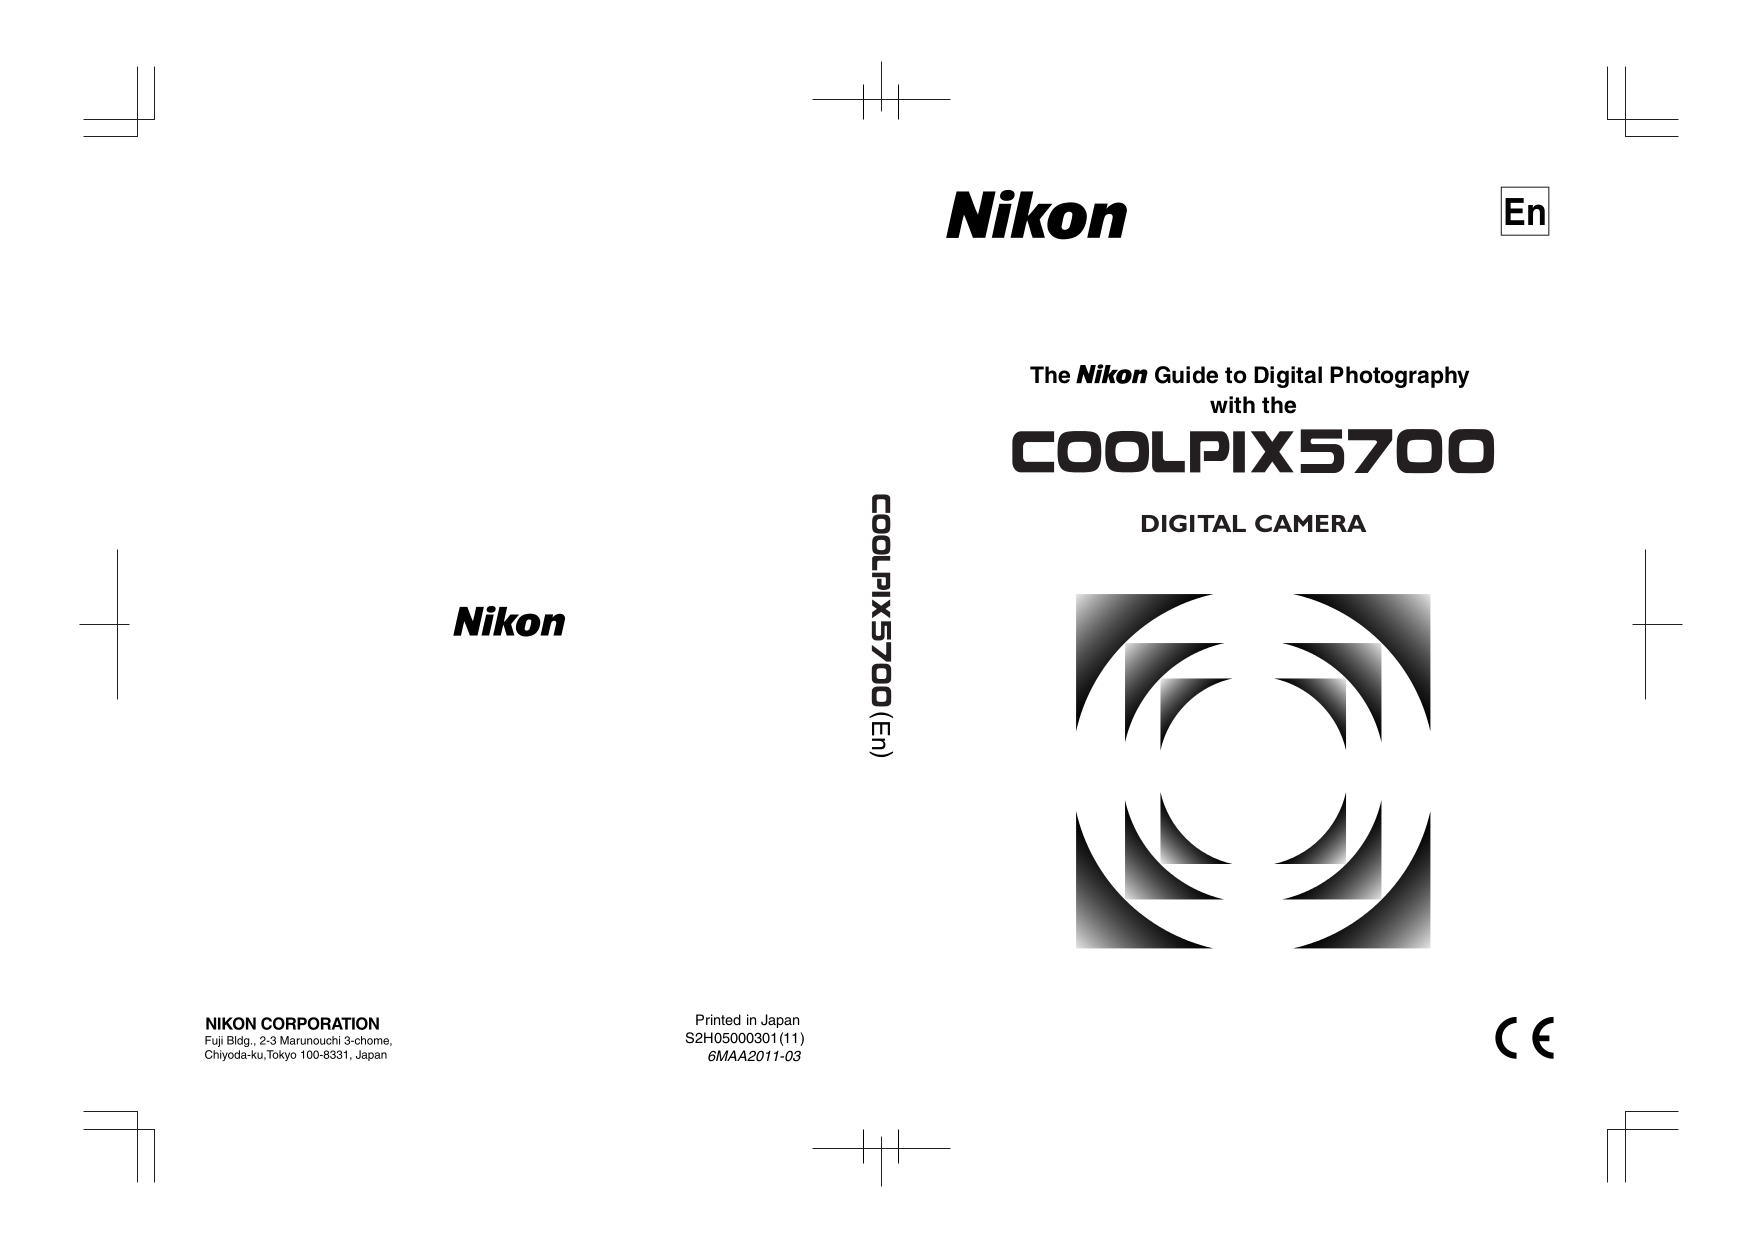 Download free pdf for Nikon CoolPix 5700 Digital Camera manual